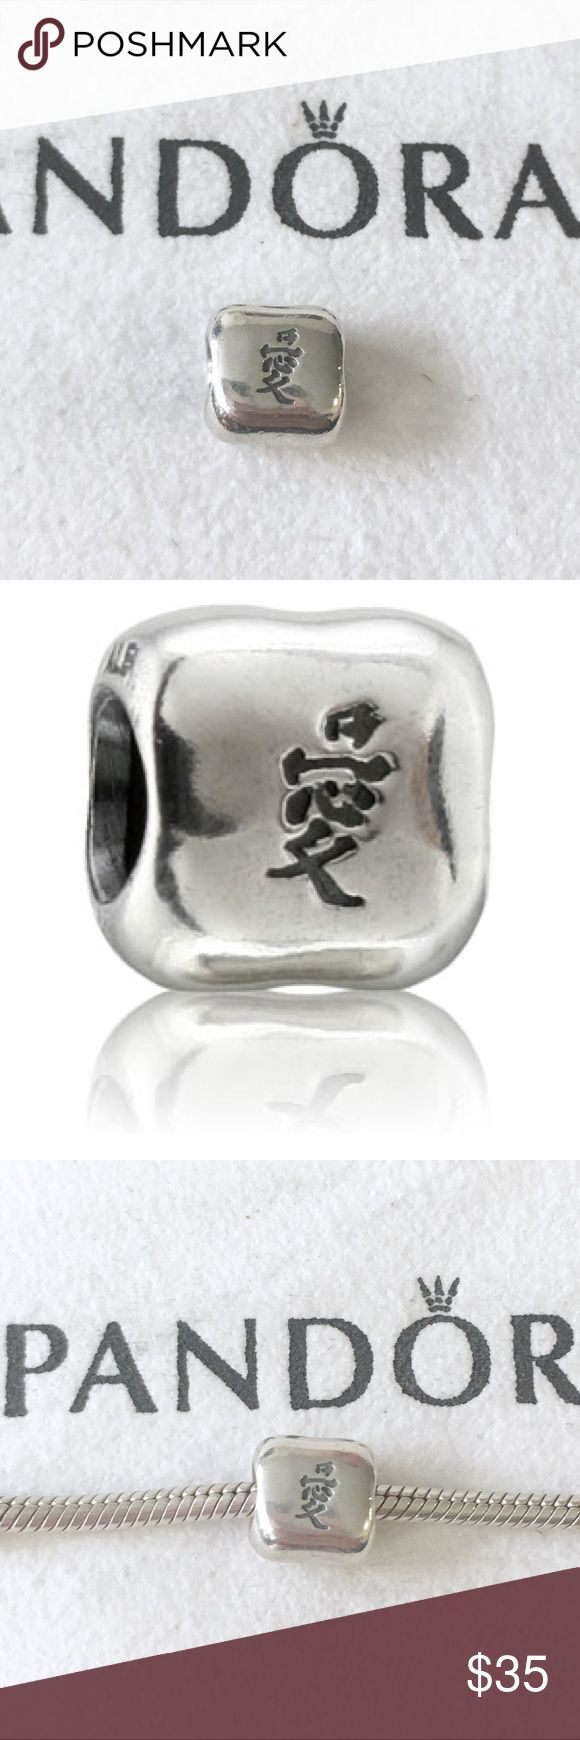 Pandora Charm Chinese symbol for love Authentic Pandora charm. A square charm with the Chinese symbol for love engraved on each side. Sterling silver charm, 925 is engraved on one side and Ale on the other. This piece is retired.   Bundle to save!   *Does not include the bracelet or cloth, and sorry I do not have a box*  #Pandora Charm, Pandora Chinese charm, Pandora Chinese symbol Charm; Pandora love charm, Chinese word for love, Sterling silver charm, pandora retired charm, pandora…